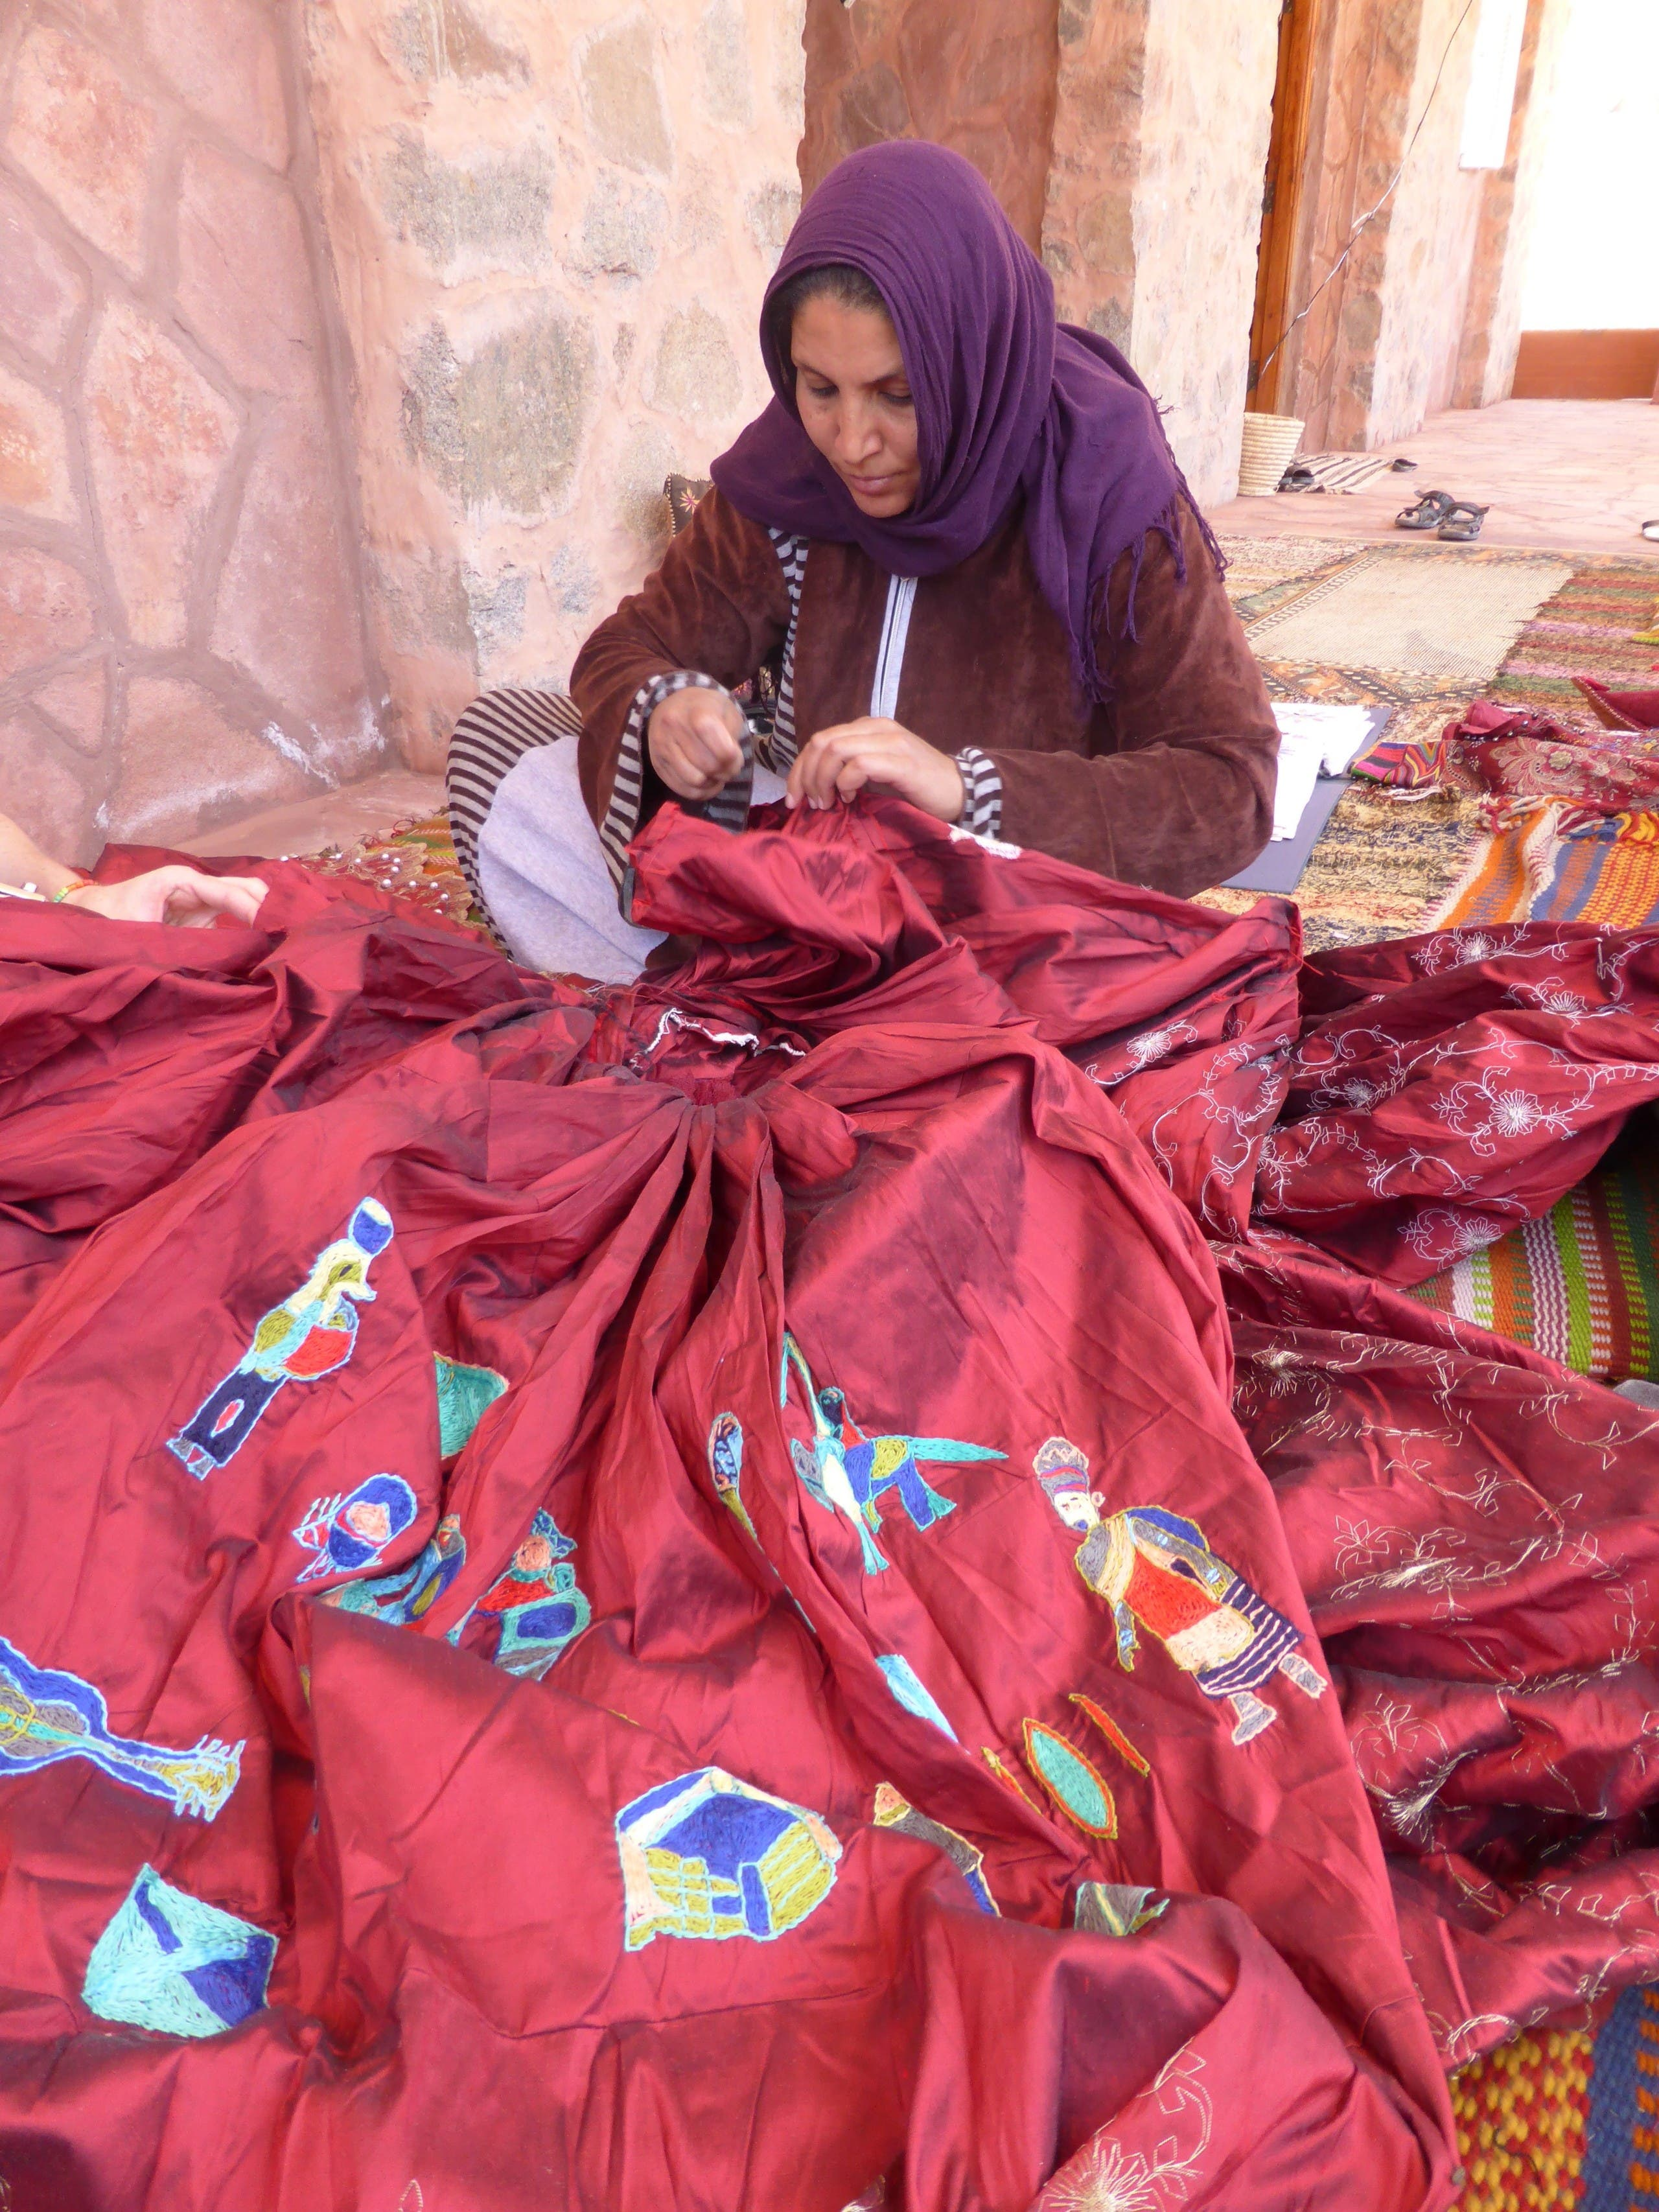 FanSina founder Selema Gebaly, working on the dress in Saint Catherine, Sinai, Egypt. (Supplied: Kirstie Macleod)